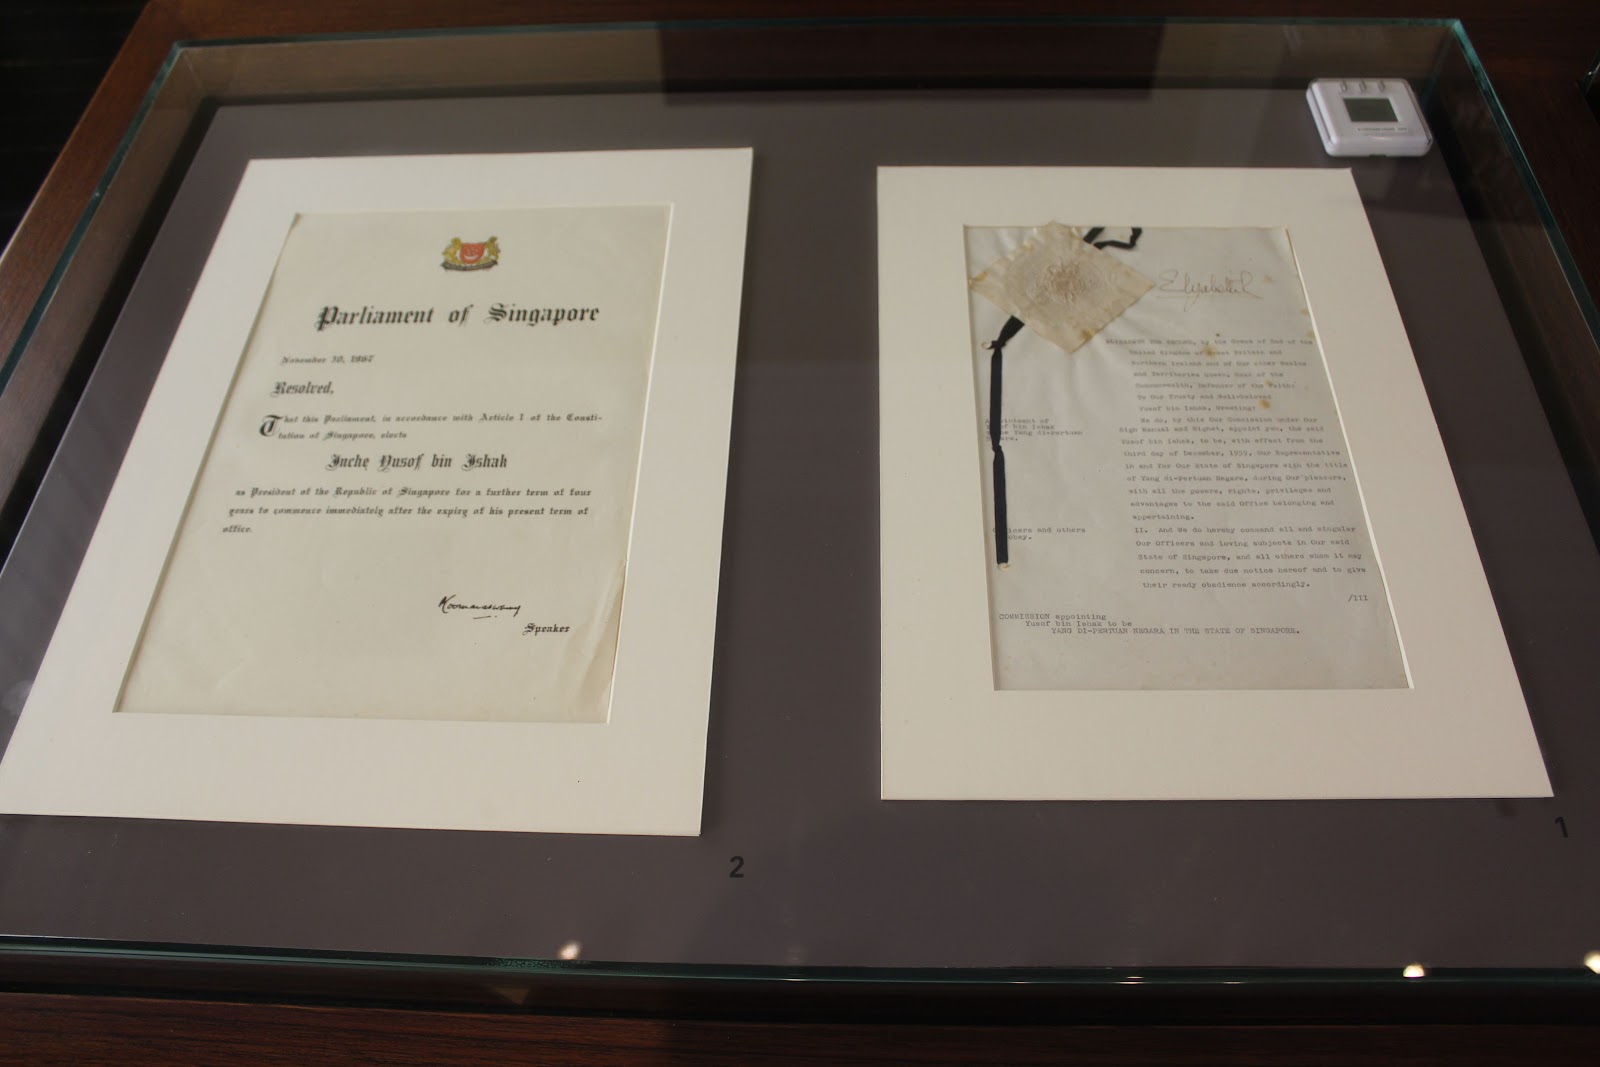 Signed documents signifying Singapore's independence and self-governance